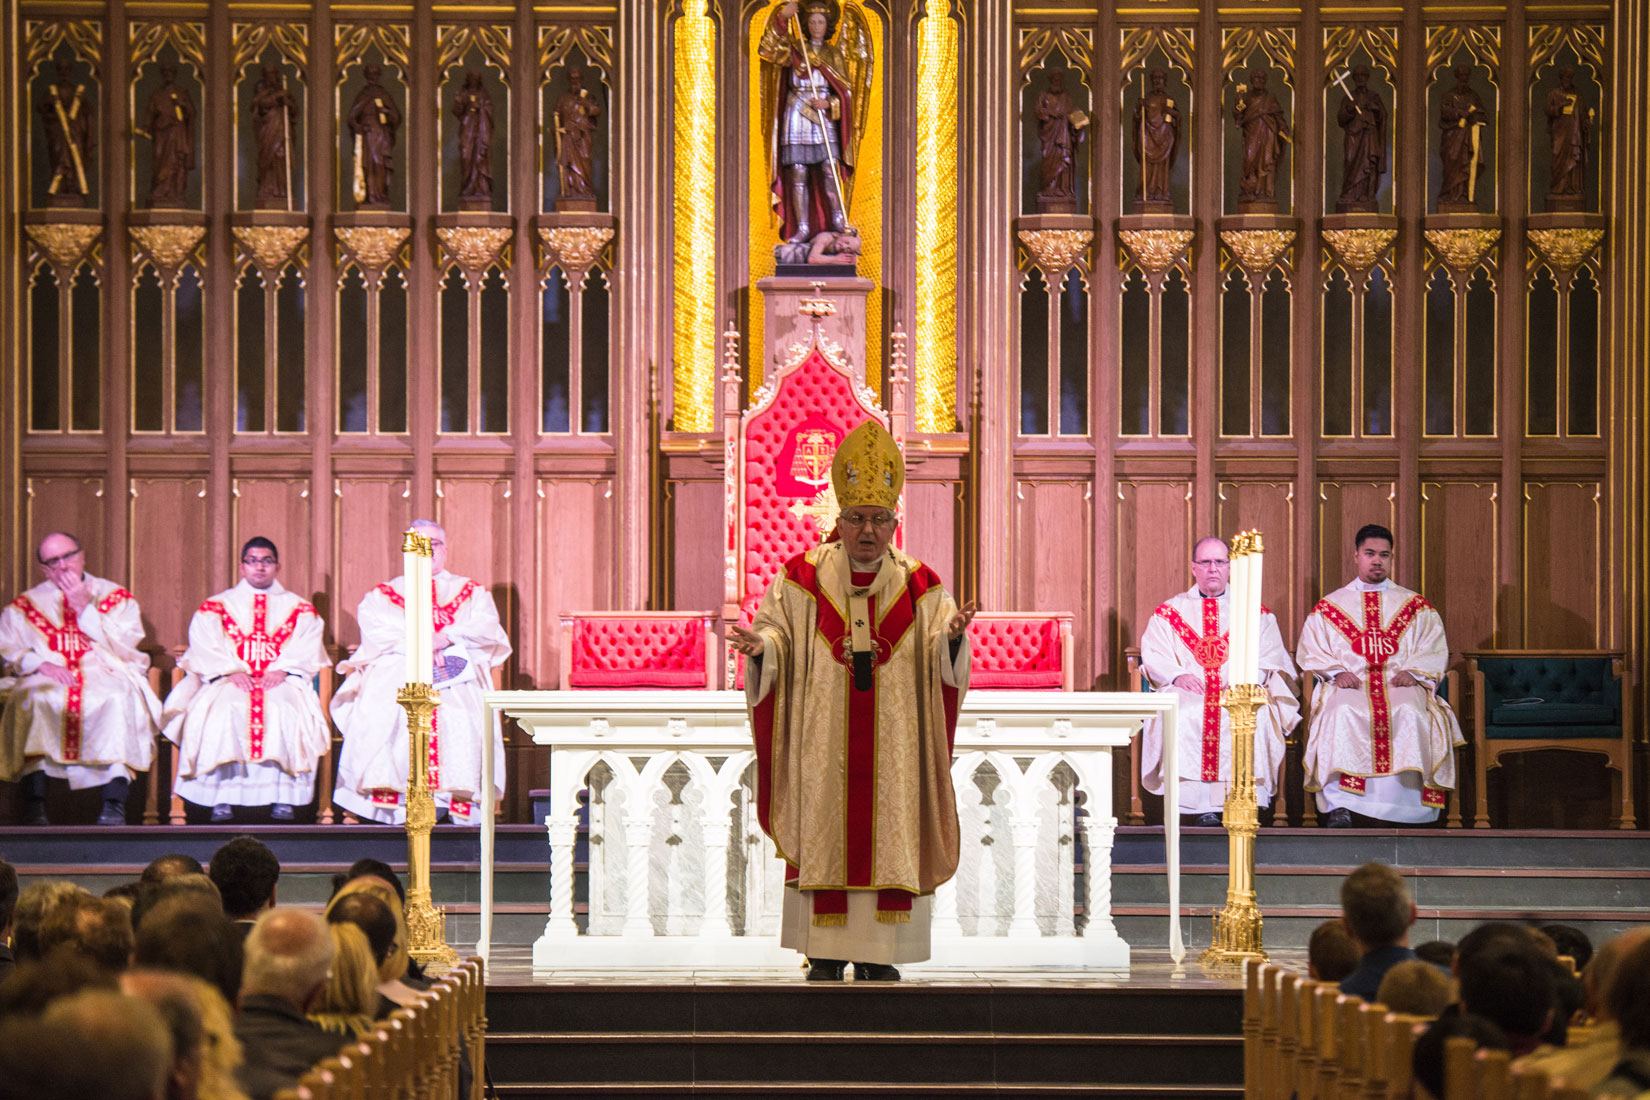 Cardinal Collins preaching at the workers' thanksgiving Mass at St. Michael's Cathedral Sept. 30. (Photo by Michael Swan)